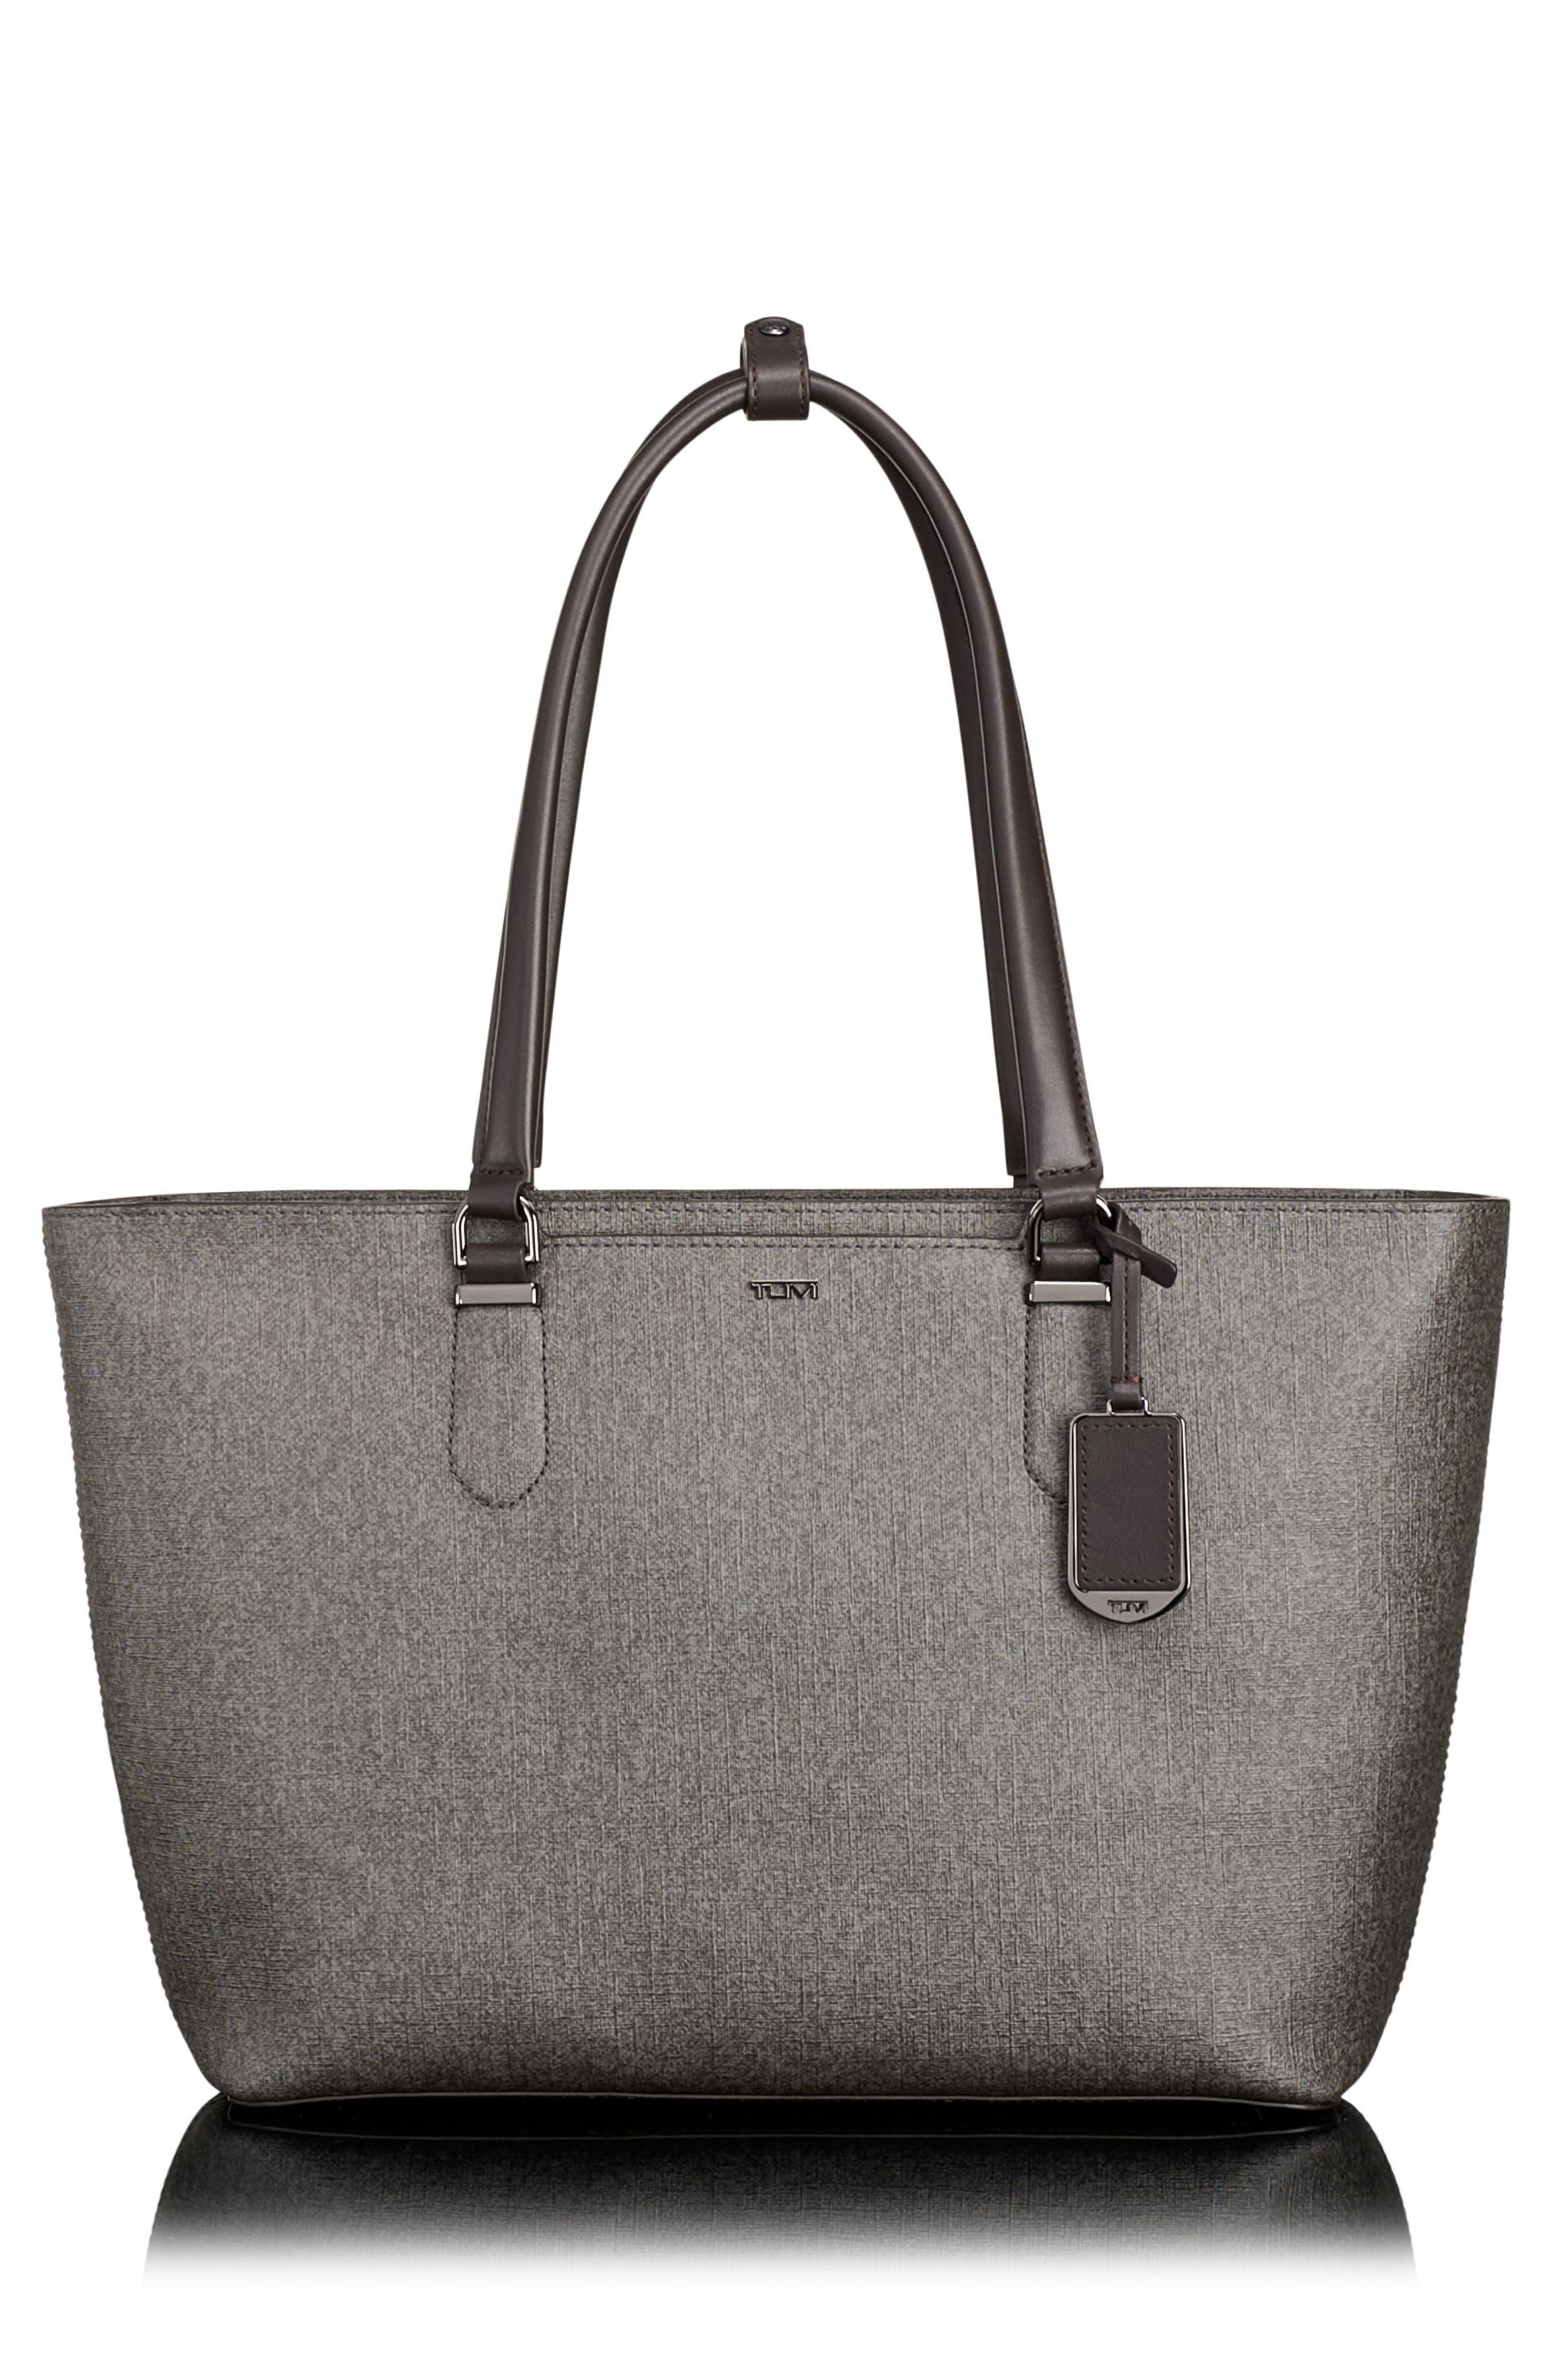 Tumi Sinclair - Nell Coated Canvas Tote